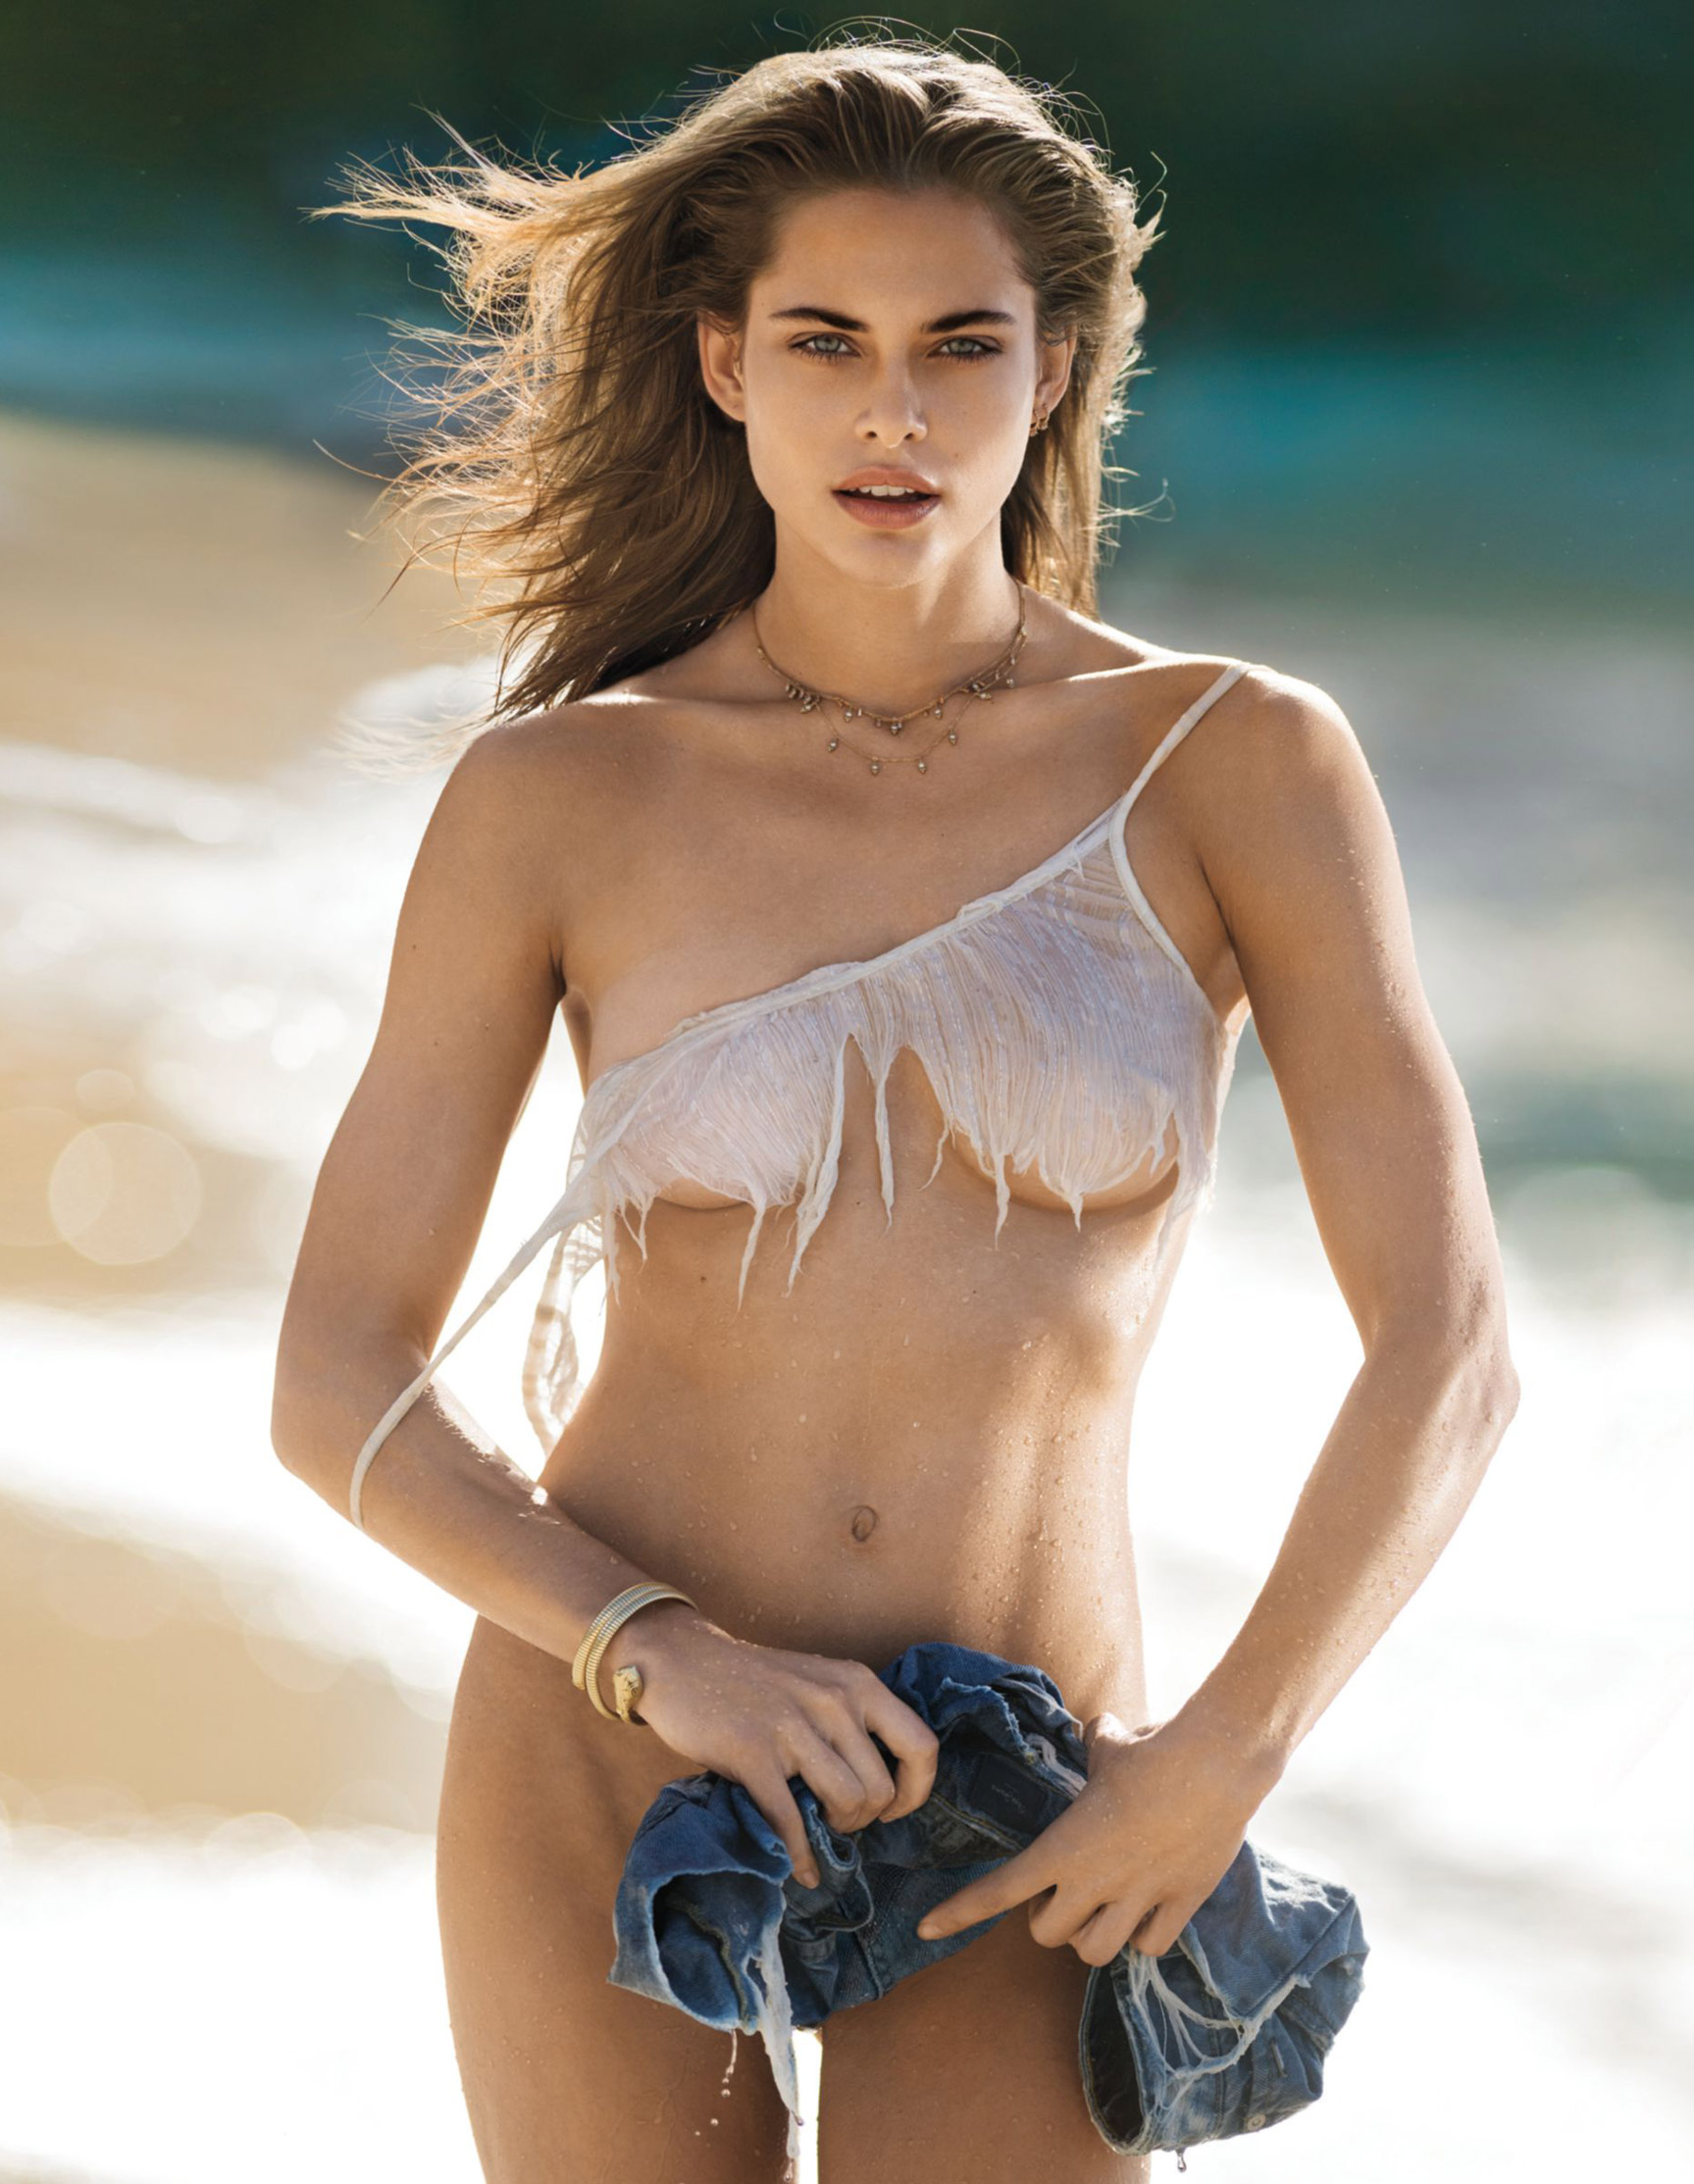 Лана Закосела / Lana Zakocela by nude Gilles Bensimon - Maxim US may 2017